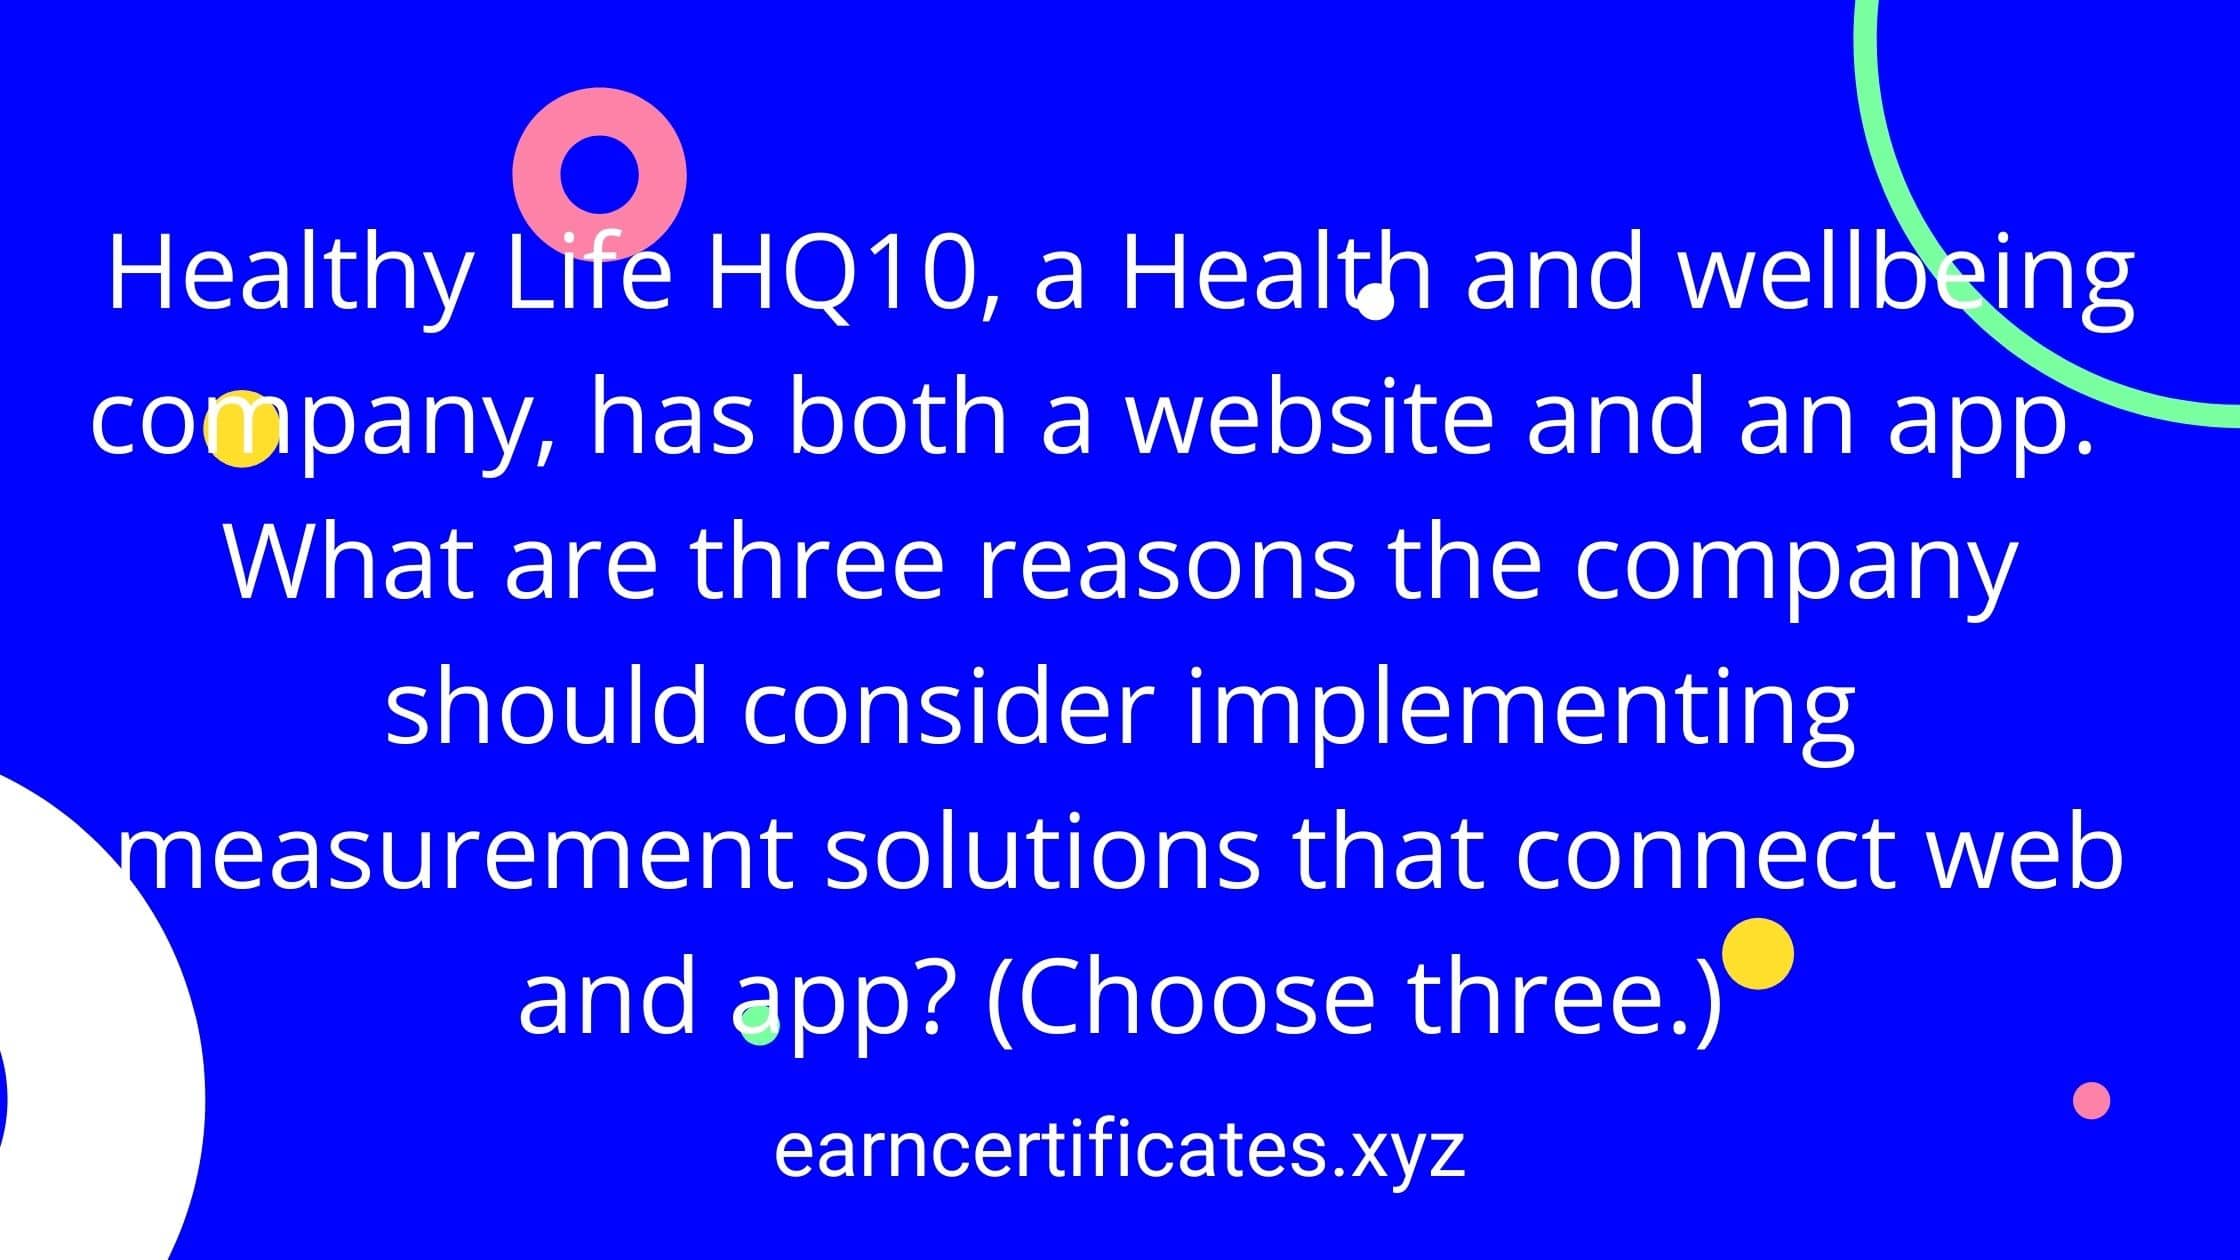 Healthy Life HQ10, a Health and wellbeing company, has both a website and an app. What are three reasons the company should consider implementing measurement solutions that connect web and app? (Choose three.)